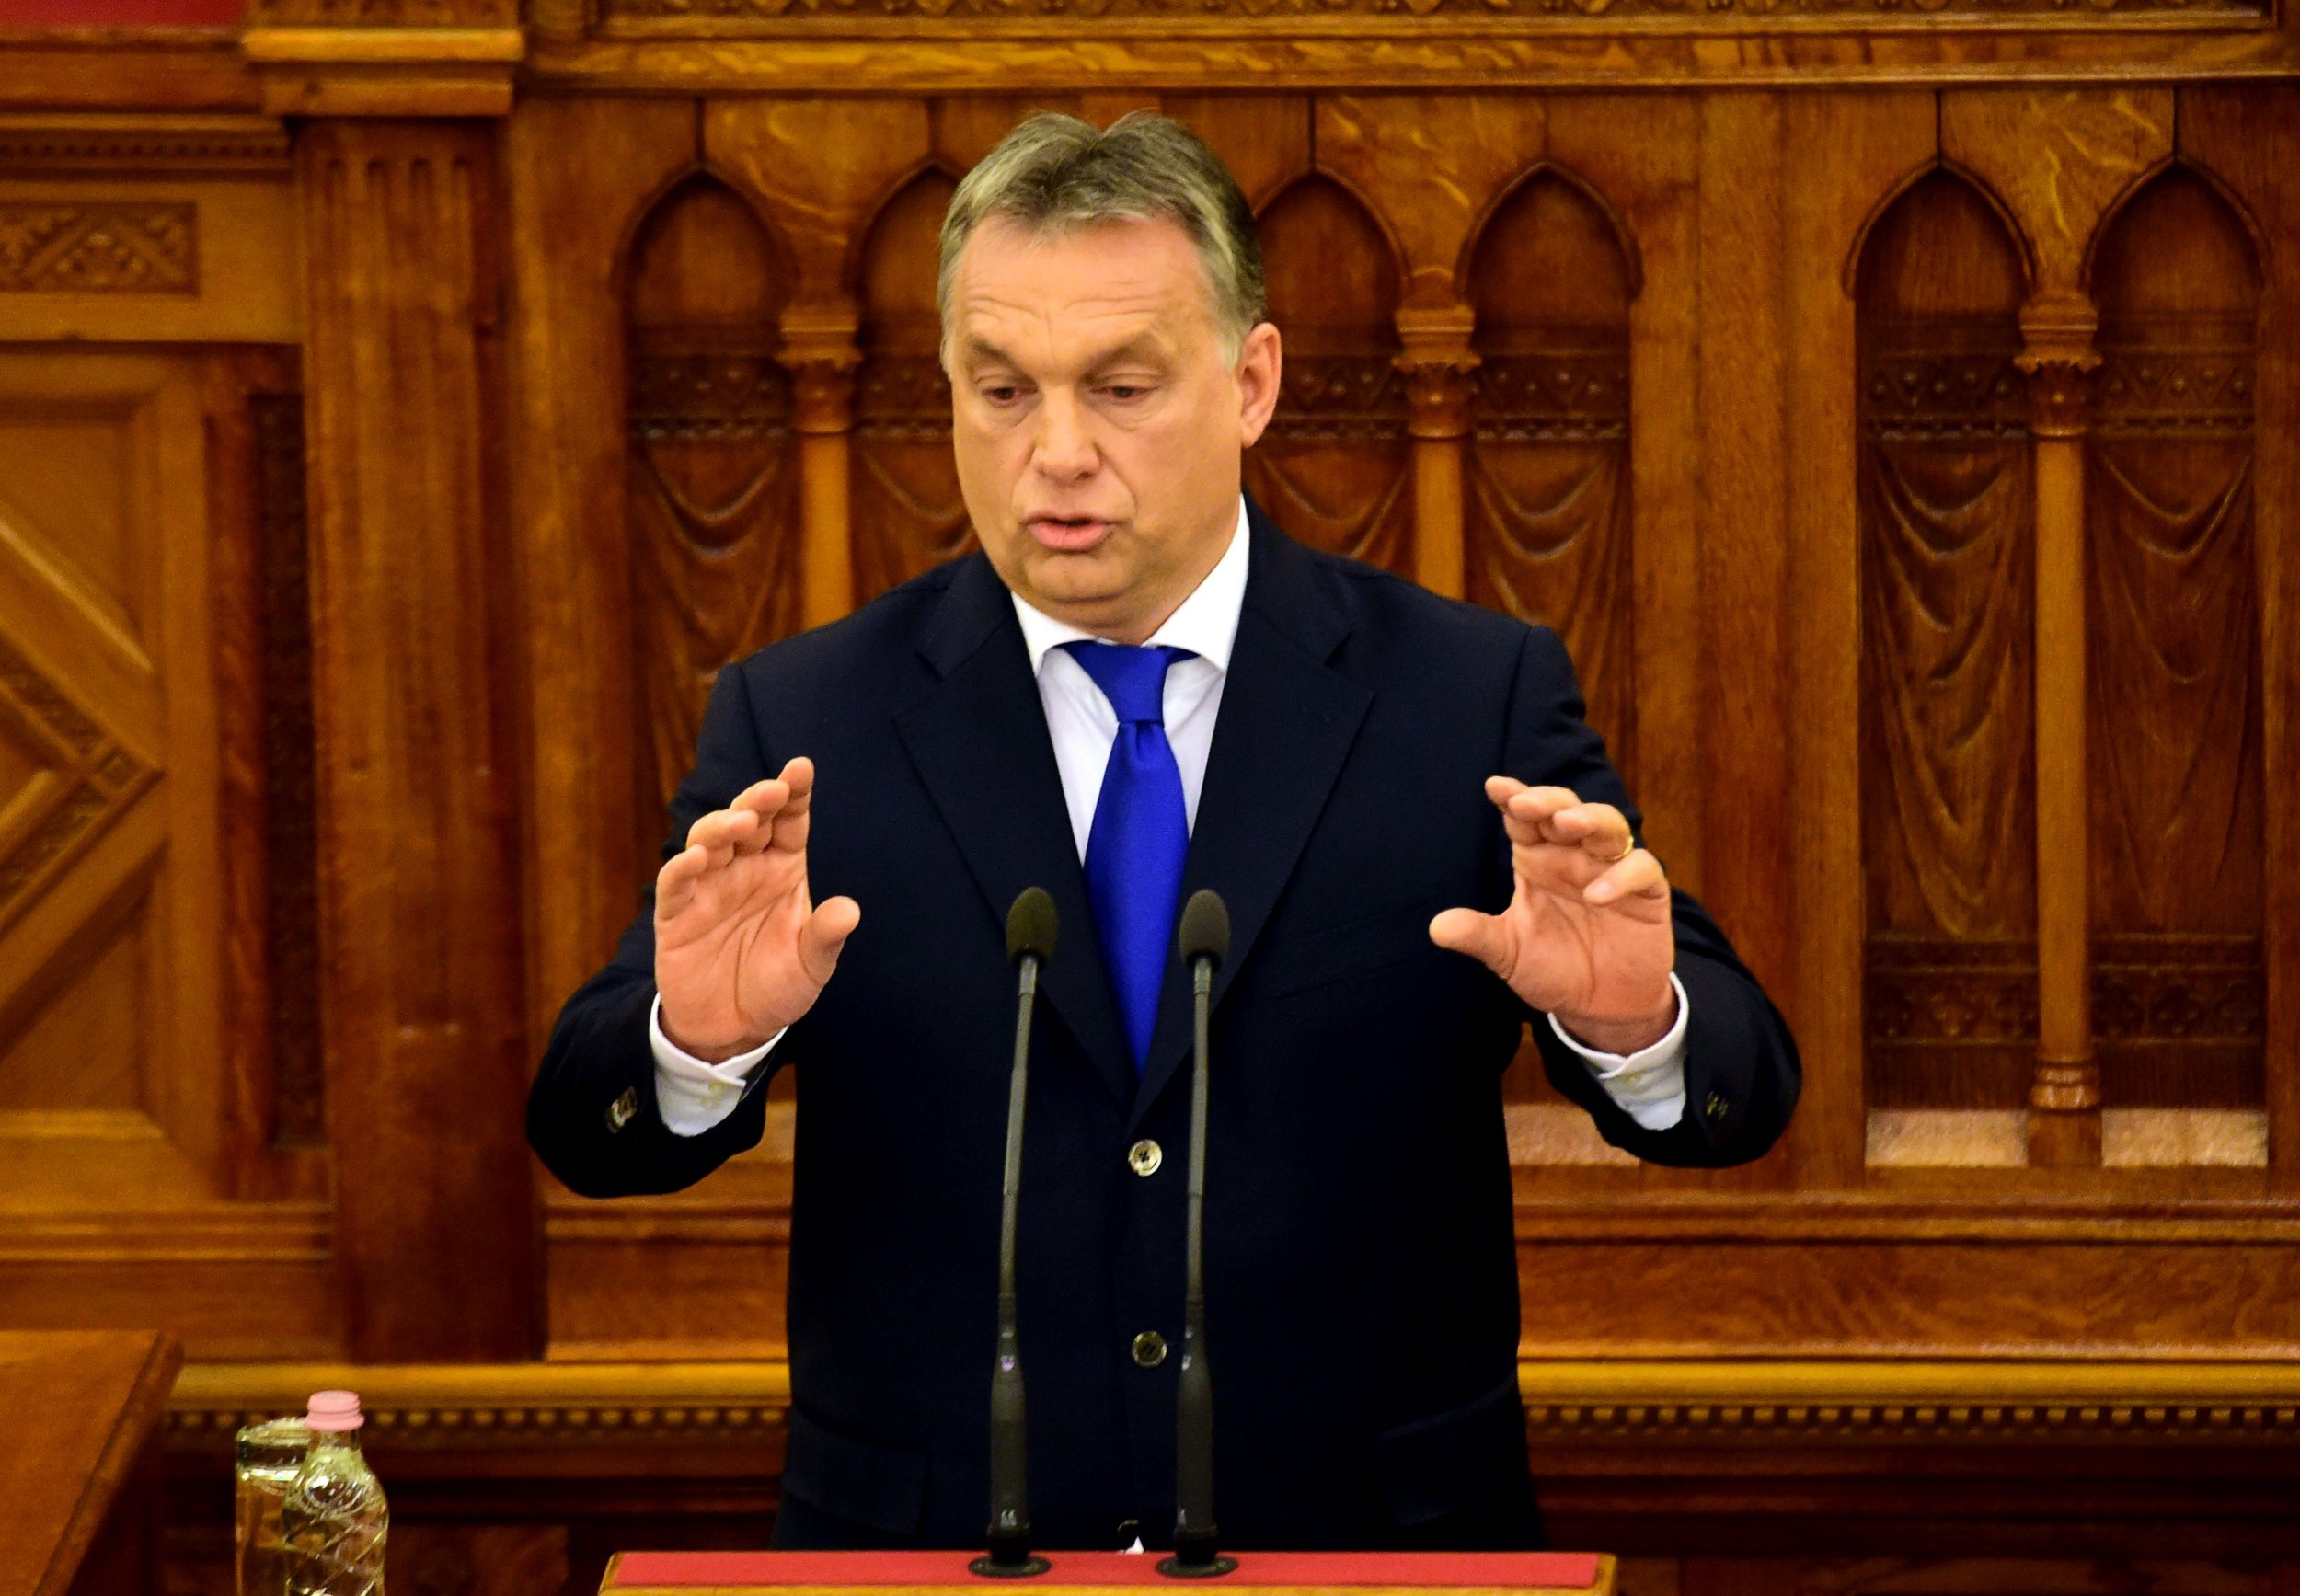 Hungarian Prime Mnister Viktor Orban holds a speech at the Parliament in Budapest, Hungary, on April 25, 2016. Hungary celebrates the 5th anniversary of the new Hungarian constitution. Over the past years, the Hungarian fundamental law has been criticized by several politicians and members of European Union. / AFP PHOTO / ATTILA KISBENEDEKATTILA KISBENEDEK/AFP/Getty Images